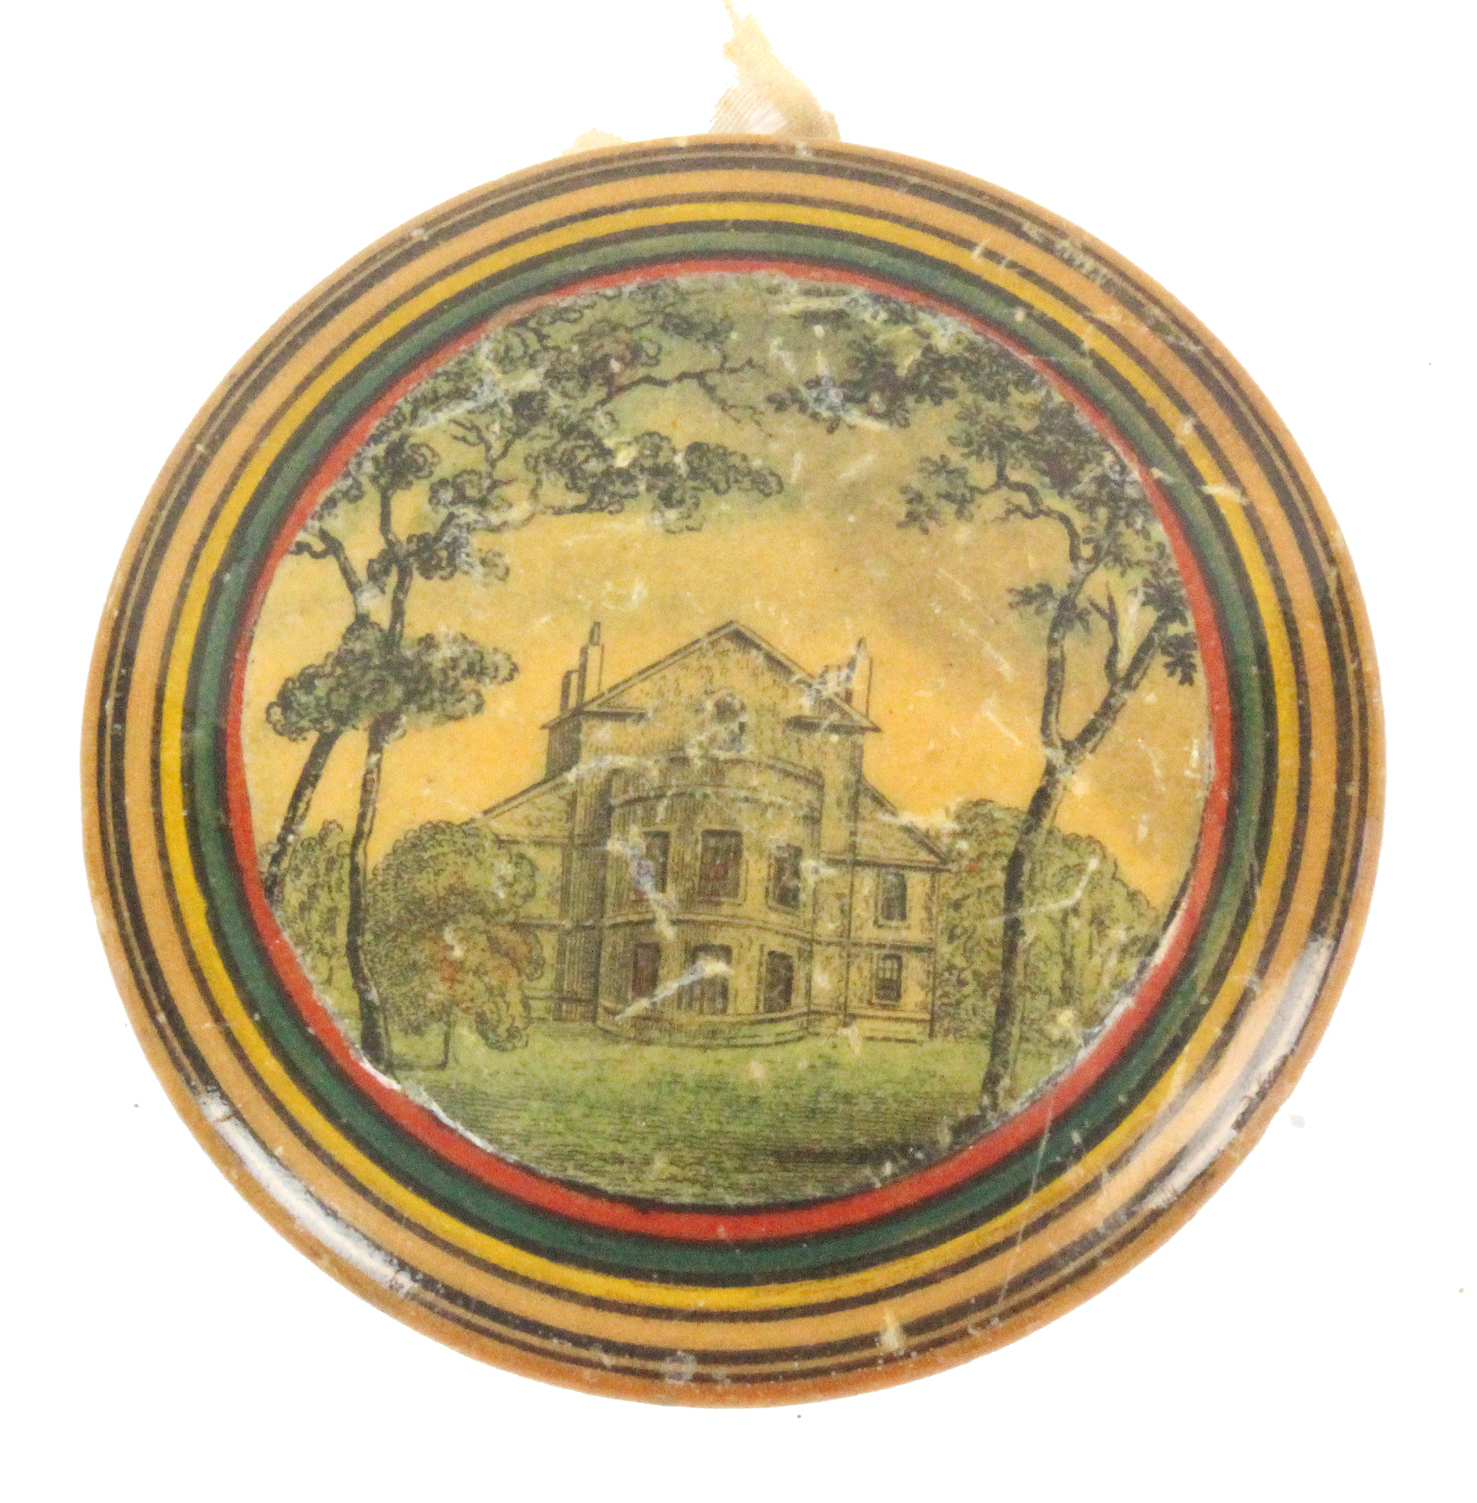 Lot 4 - A rare circular paint and print decorated early Tunbridge ware pin cushion, of circular form one